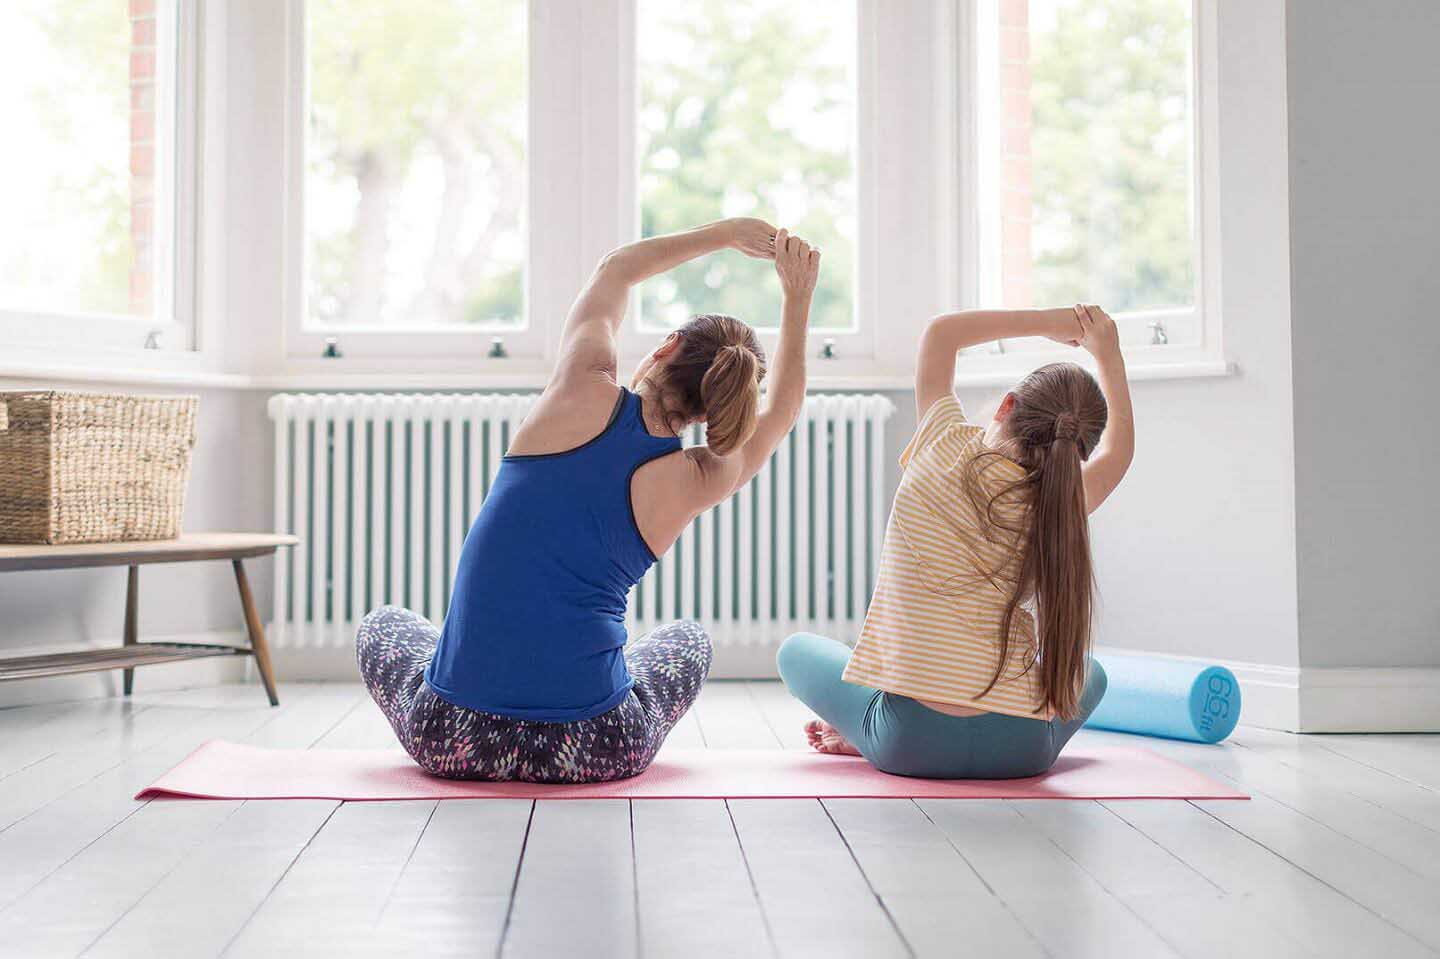 Two women practising yoga and stretching in front of a bay window, representing the importance and benefits of preventative healh plans provided by Simplyhealth.